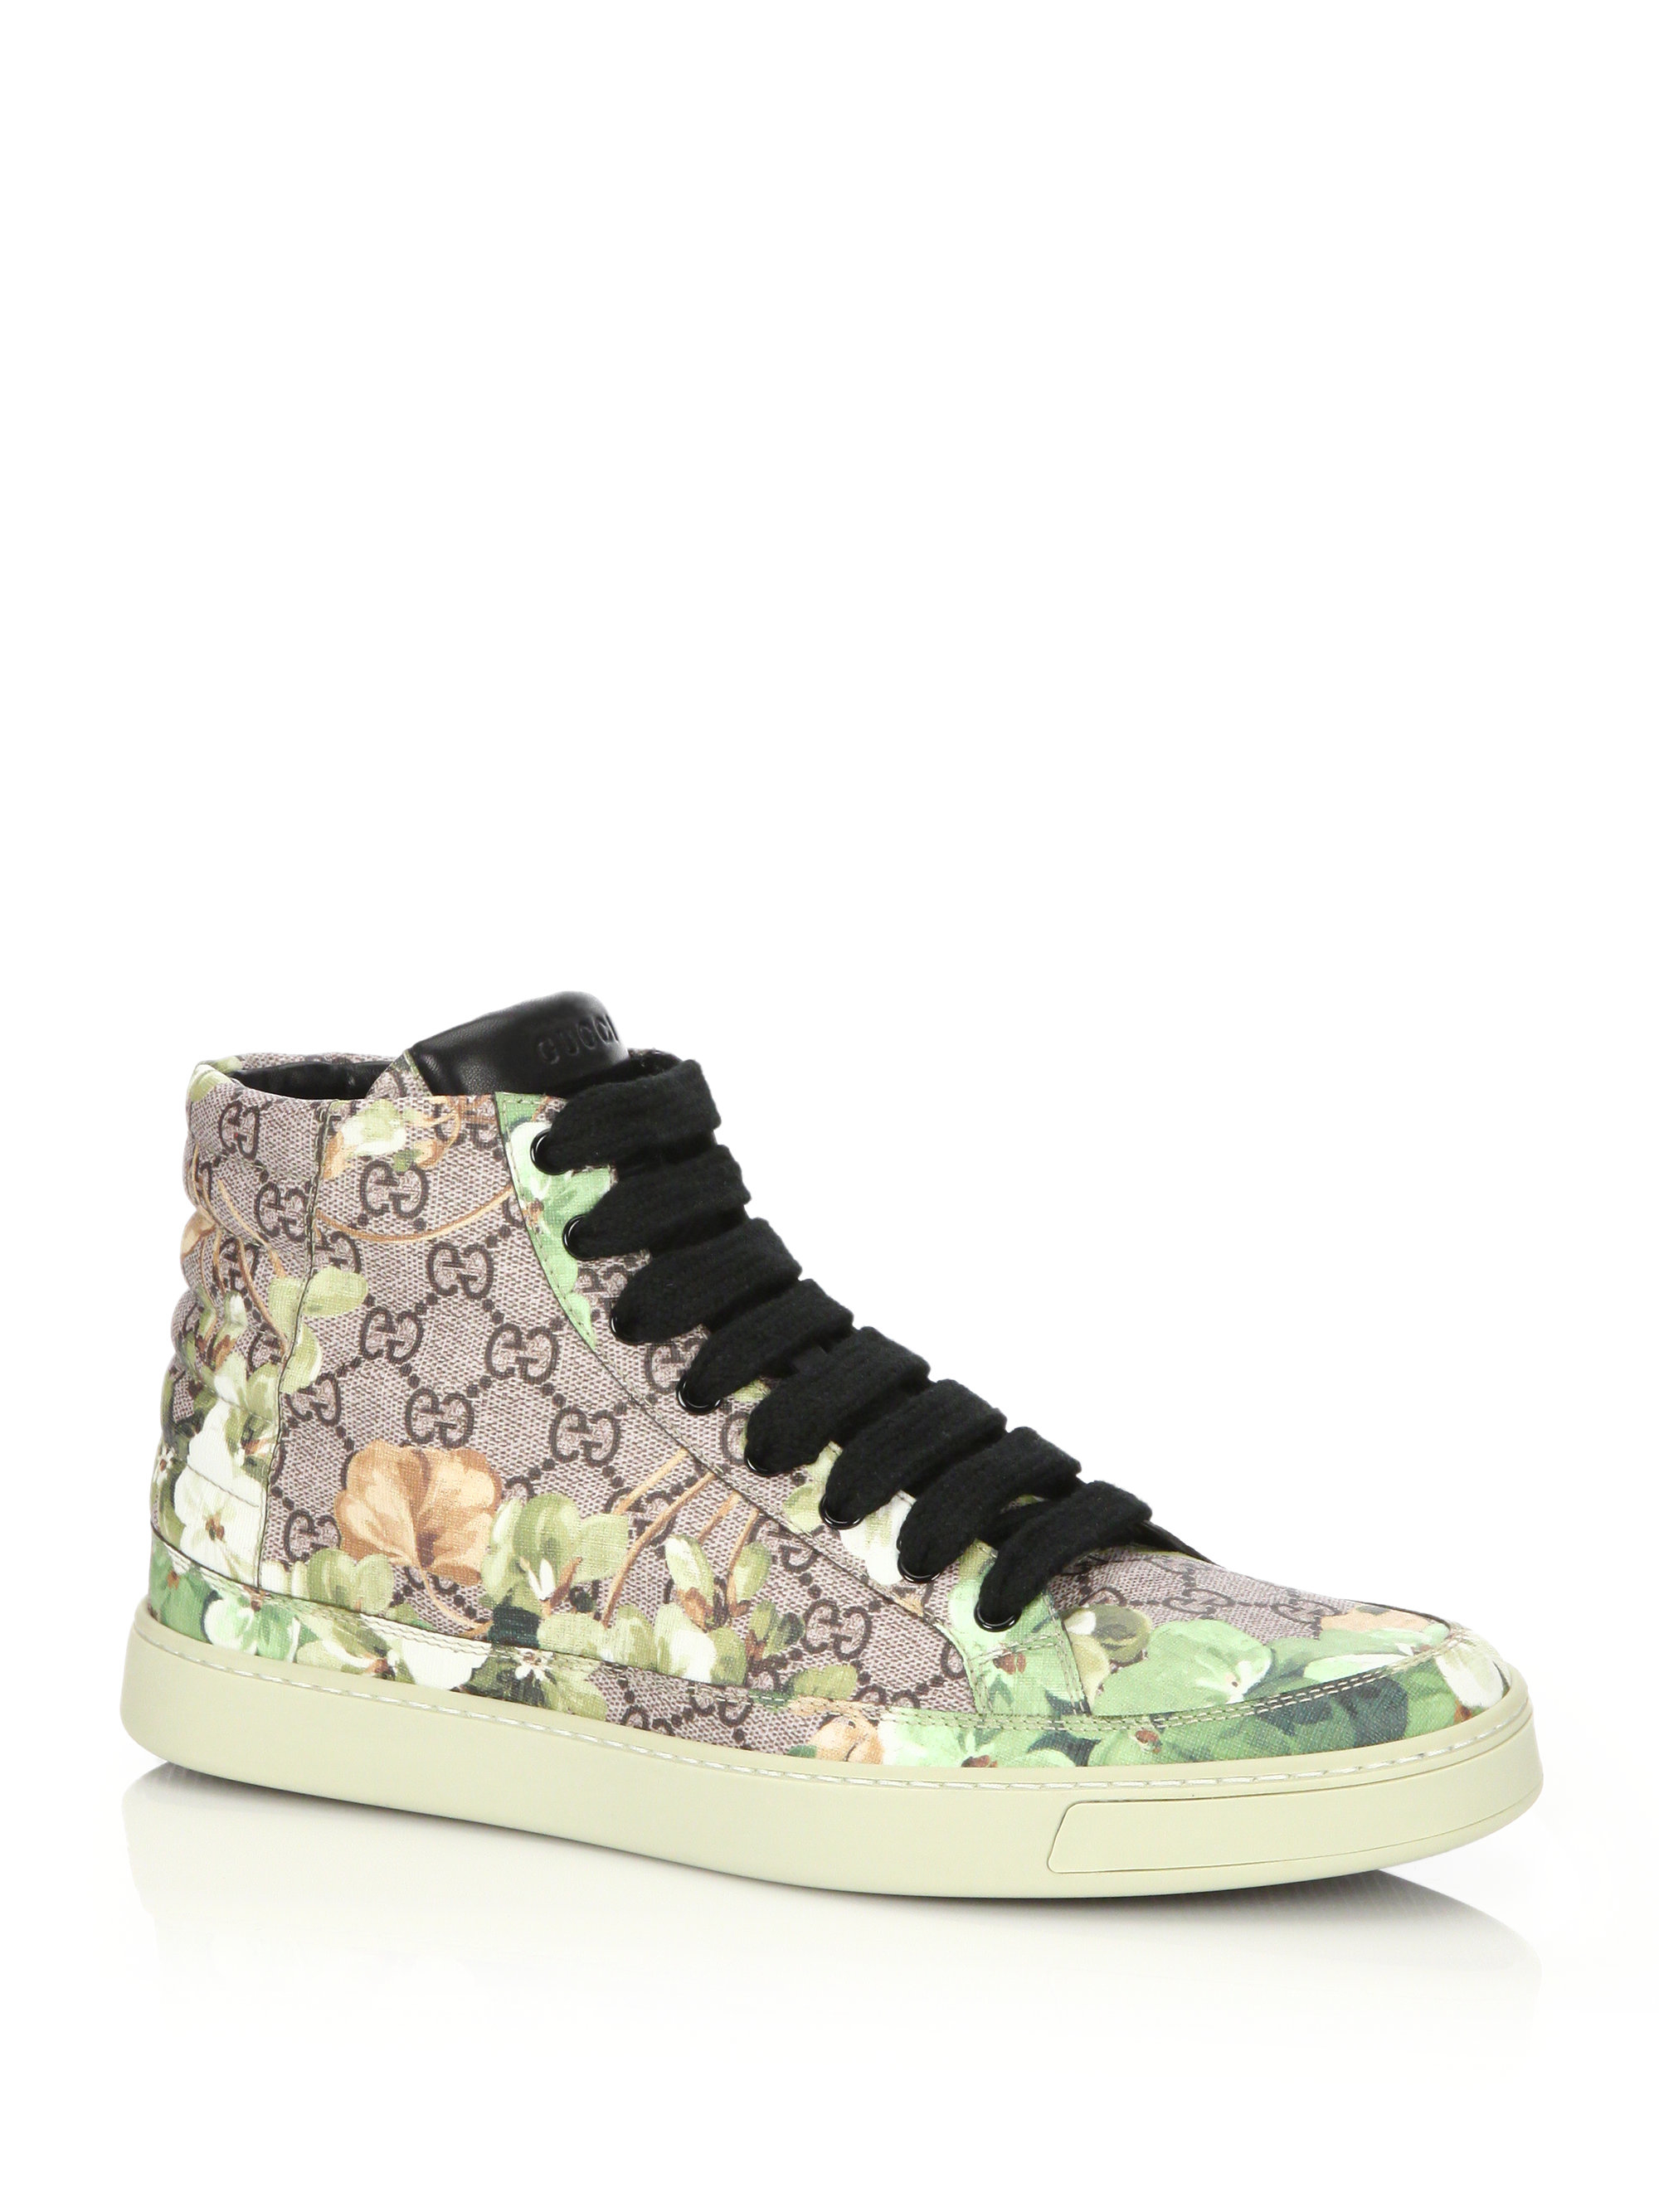 3cc3d7ef664 Lyst - Gucci Blooms Print High-top Sneakers for Men